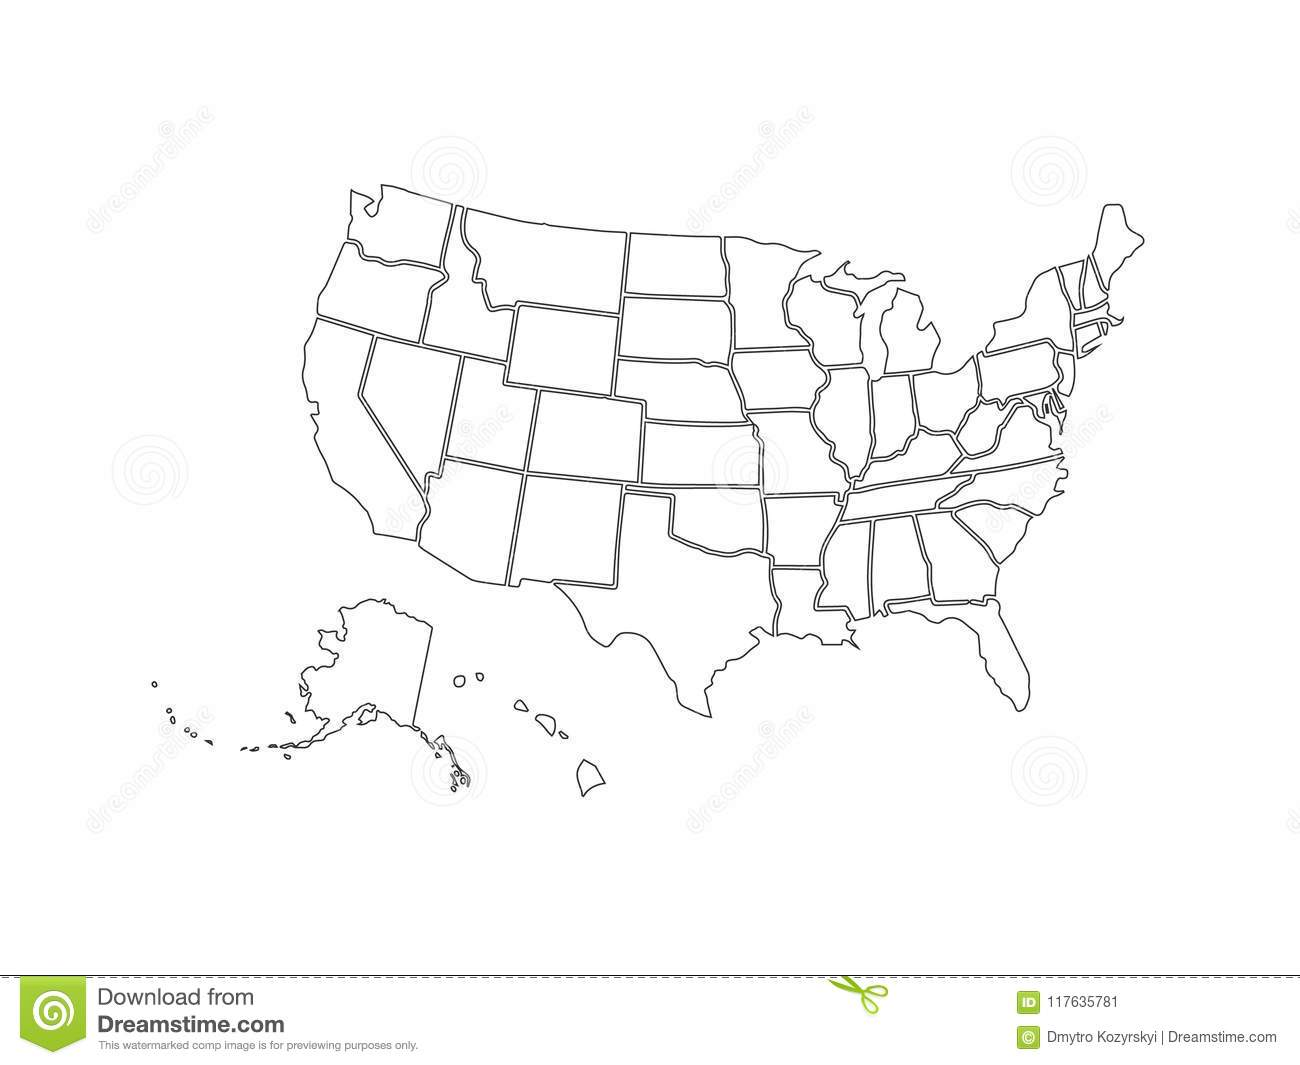 Blank Similar USA Map Isolated On White Background. United ... on map of idaho balanced rock, map showing counties of idaho, map of idaho showing cities, map of idaho and montana, map of great basin usa, map of madison usa, map of sandpoint idaho and surrounding area, map of rocky mountains in idaho, map of osburn idaho, map of southern idaho, map of tensed idaho, map of jamaica usa, map of idaho capitol building, driggs idaho map usa, map of state of washington usa, map of northern idaho, map of idaho state, map of northwest territory usa, map of san antonio usa, map of idaho college,